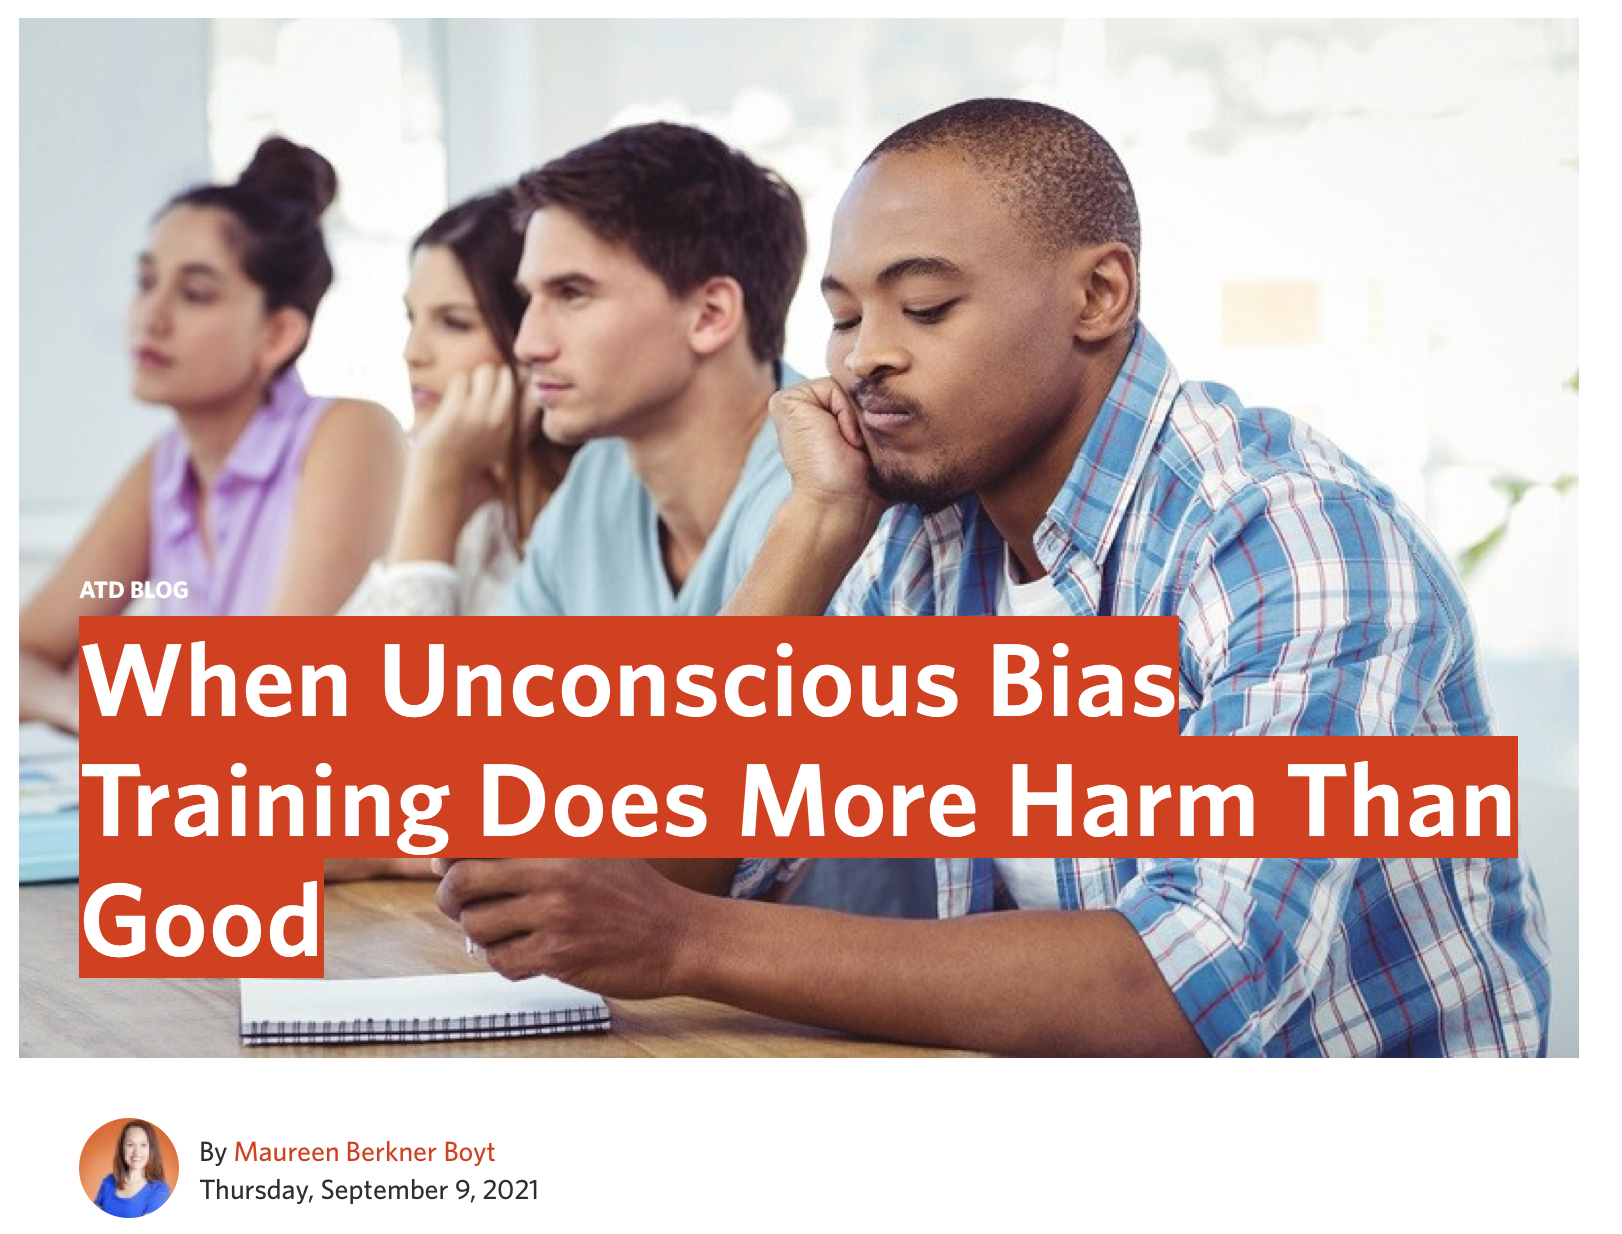 When Unconscious Bias Training Does More Harm Than Good